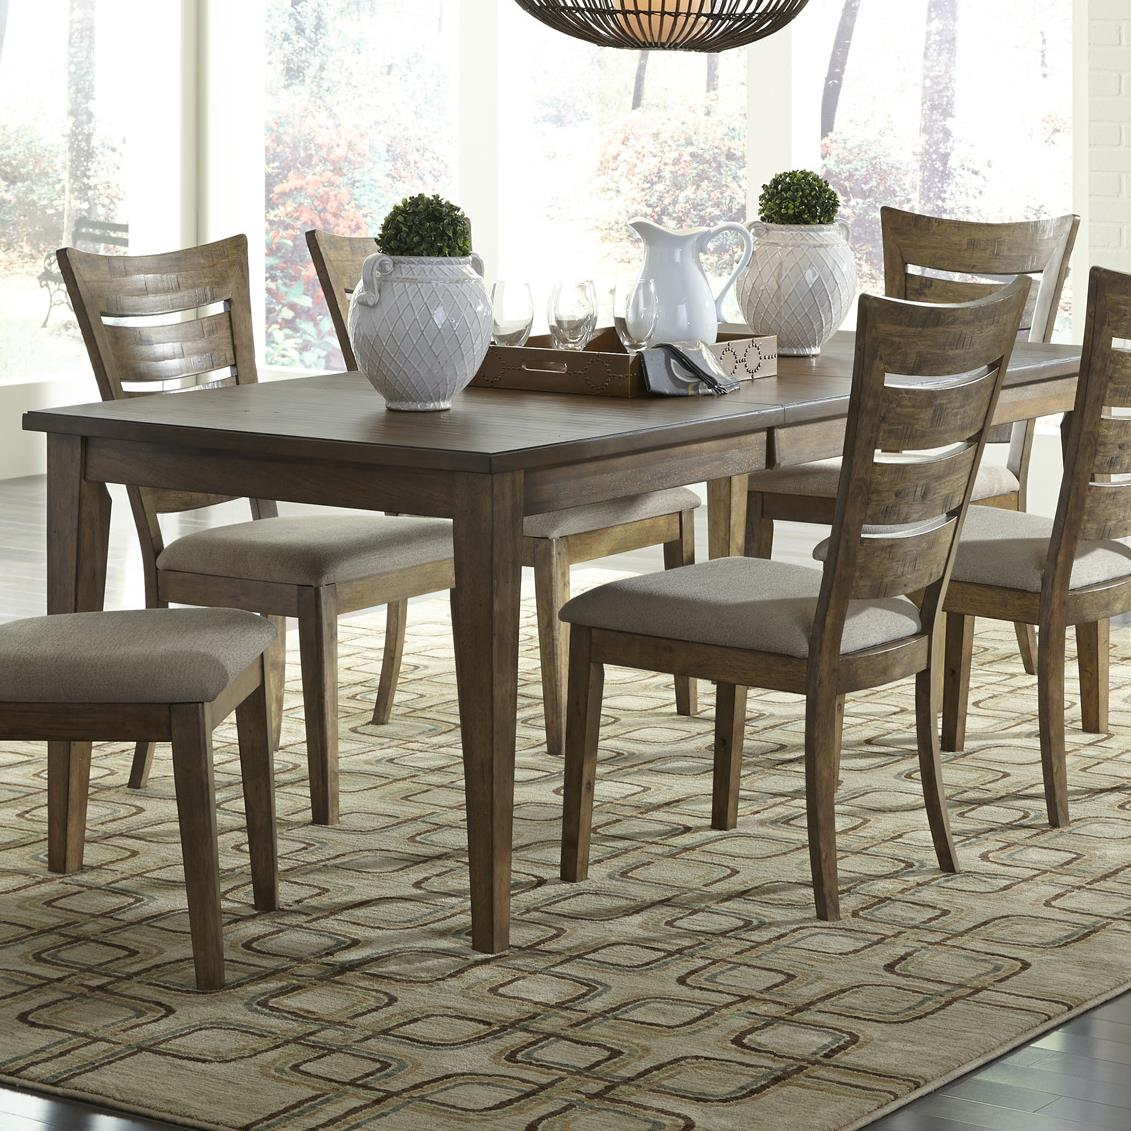 Pebble creek casual rectangular leg table with 18 inch for Rectangular dining room tables with leaves